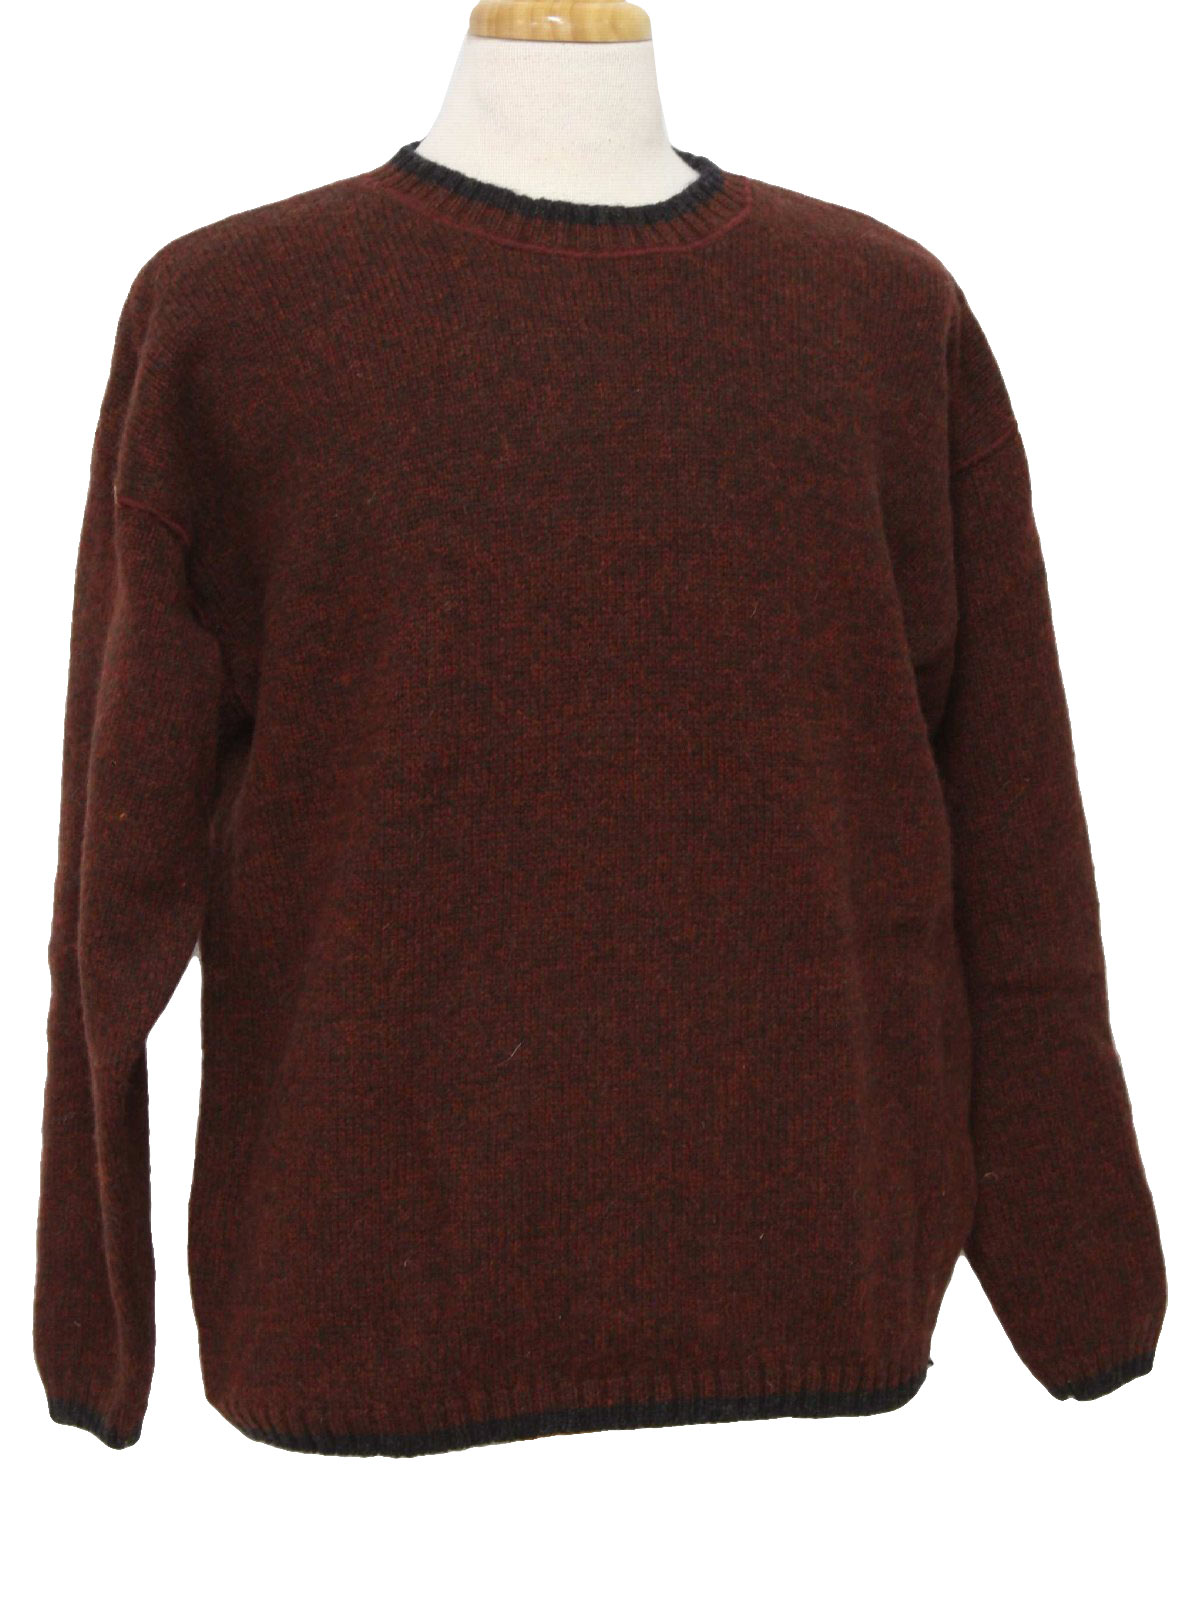 Vintage Woolrich 1990s Sweater: 90s -Woolrich- Mens brick red and ...